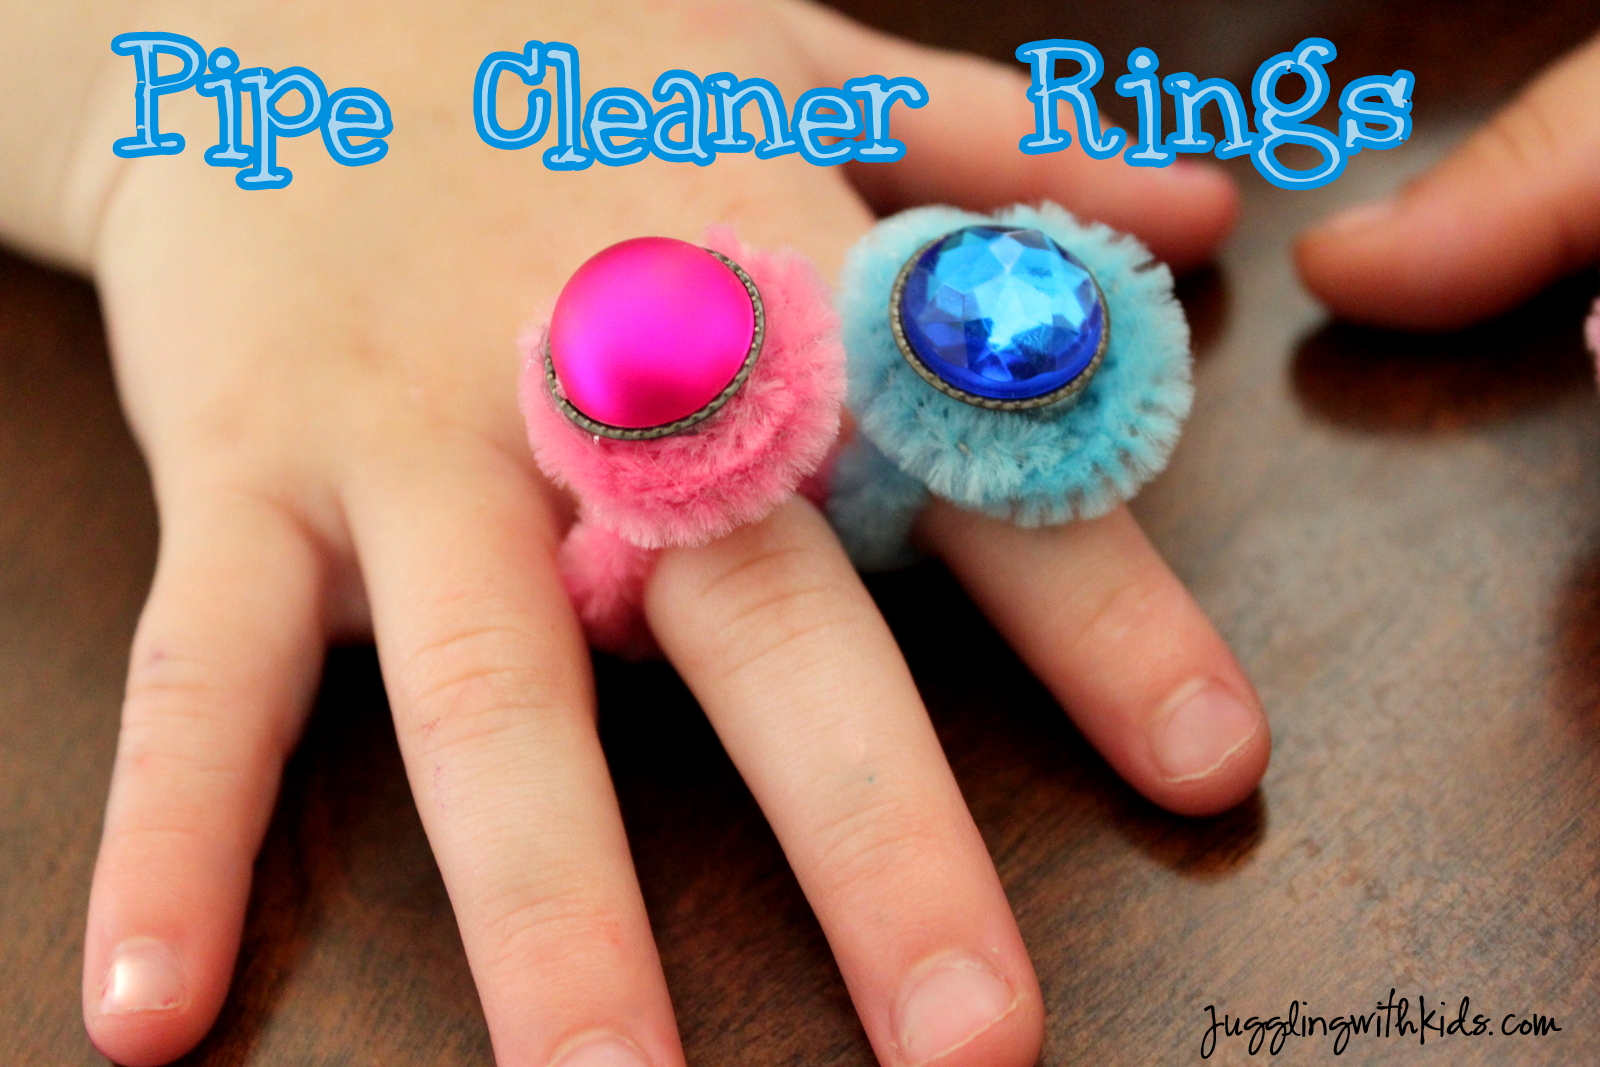 Pipe Cleaner Rings  Juggling With Kids